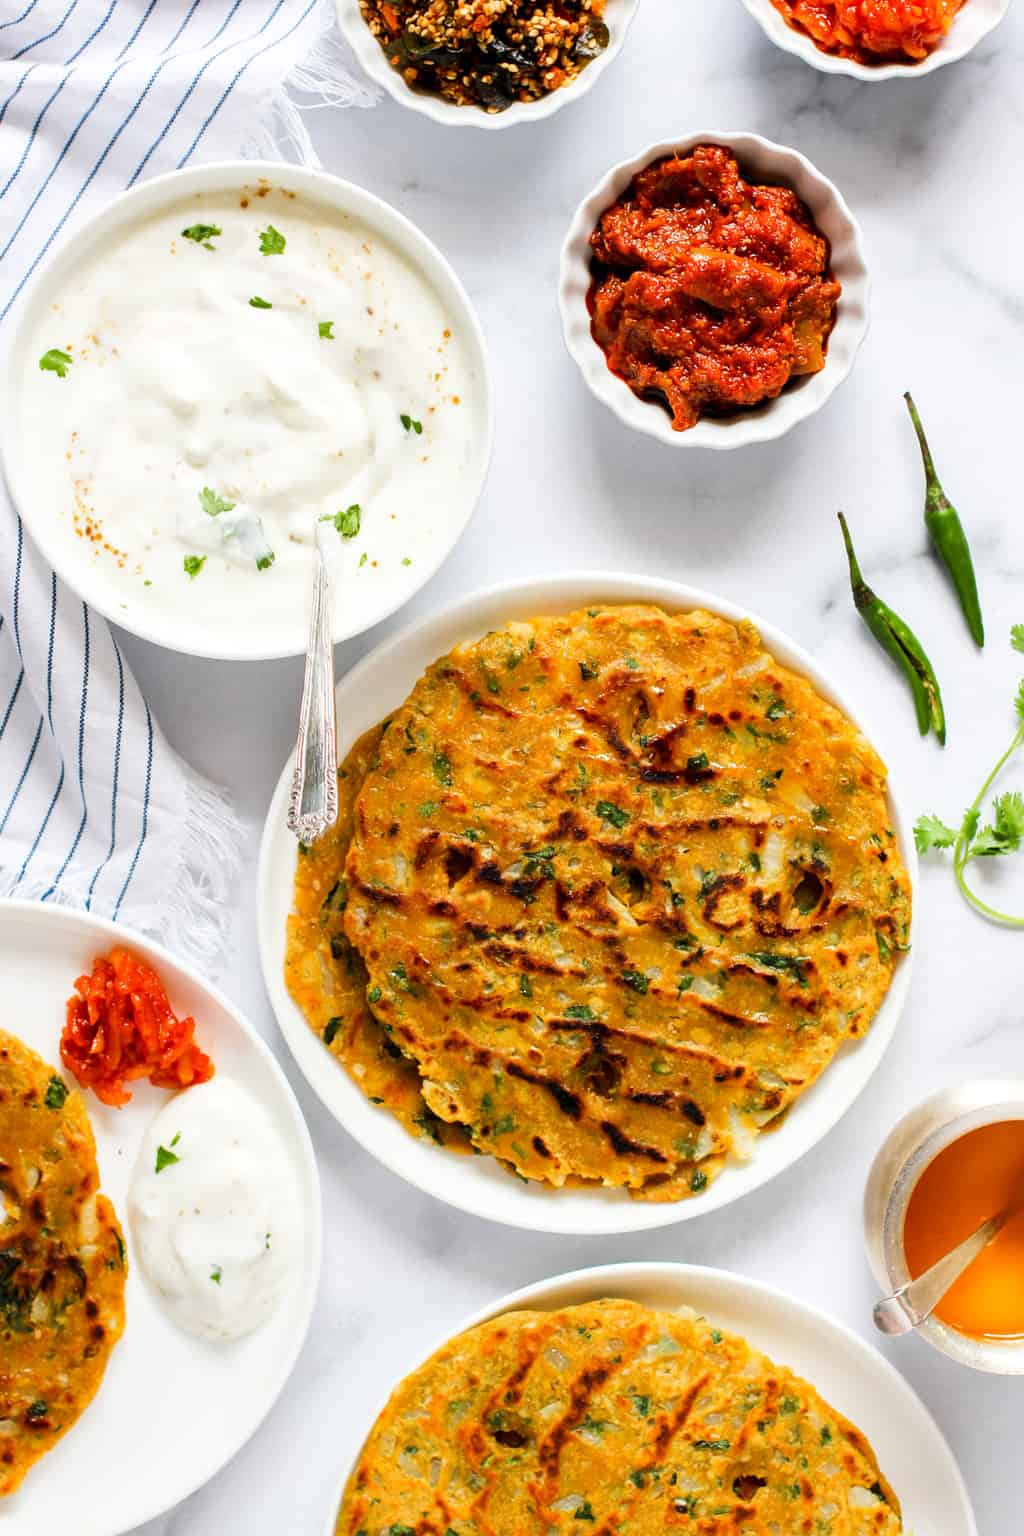 Thalipeeth served with yogurt, pickle and chutney